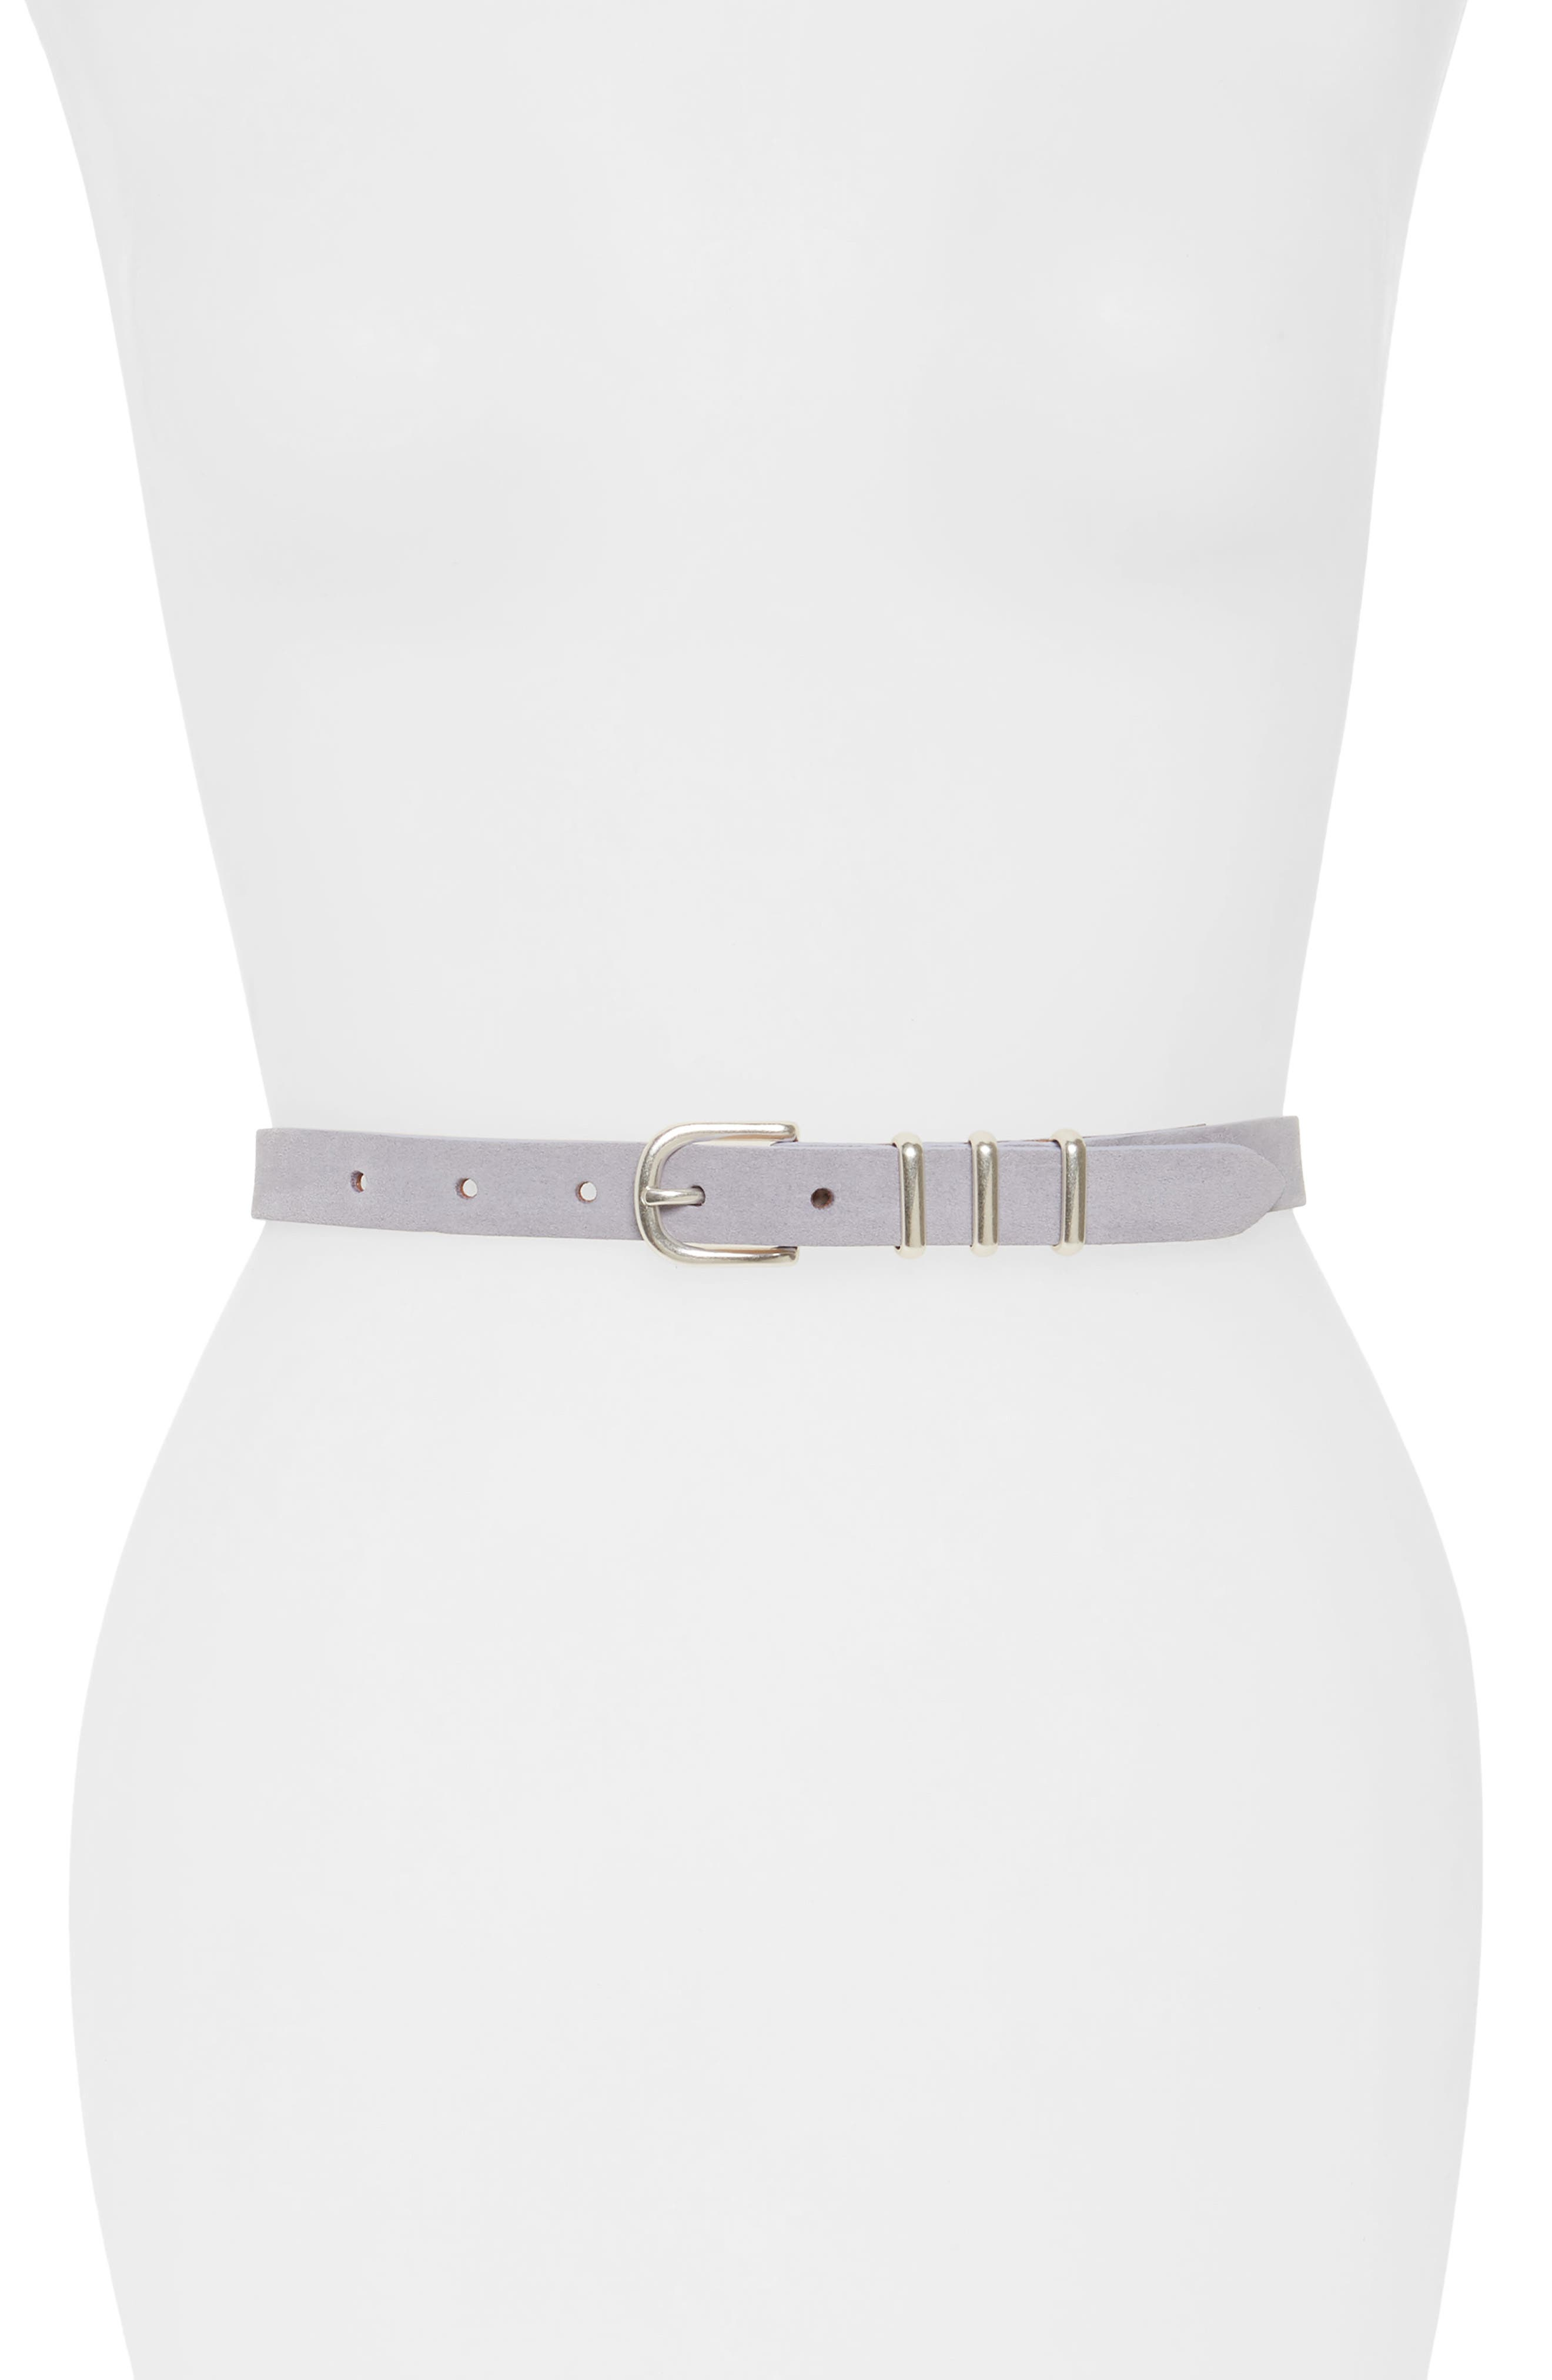 'Jet' Skinny Leather Belt,                             Main thumbnail 1, color,                             LILAC SUEDE